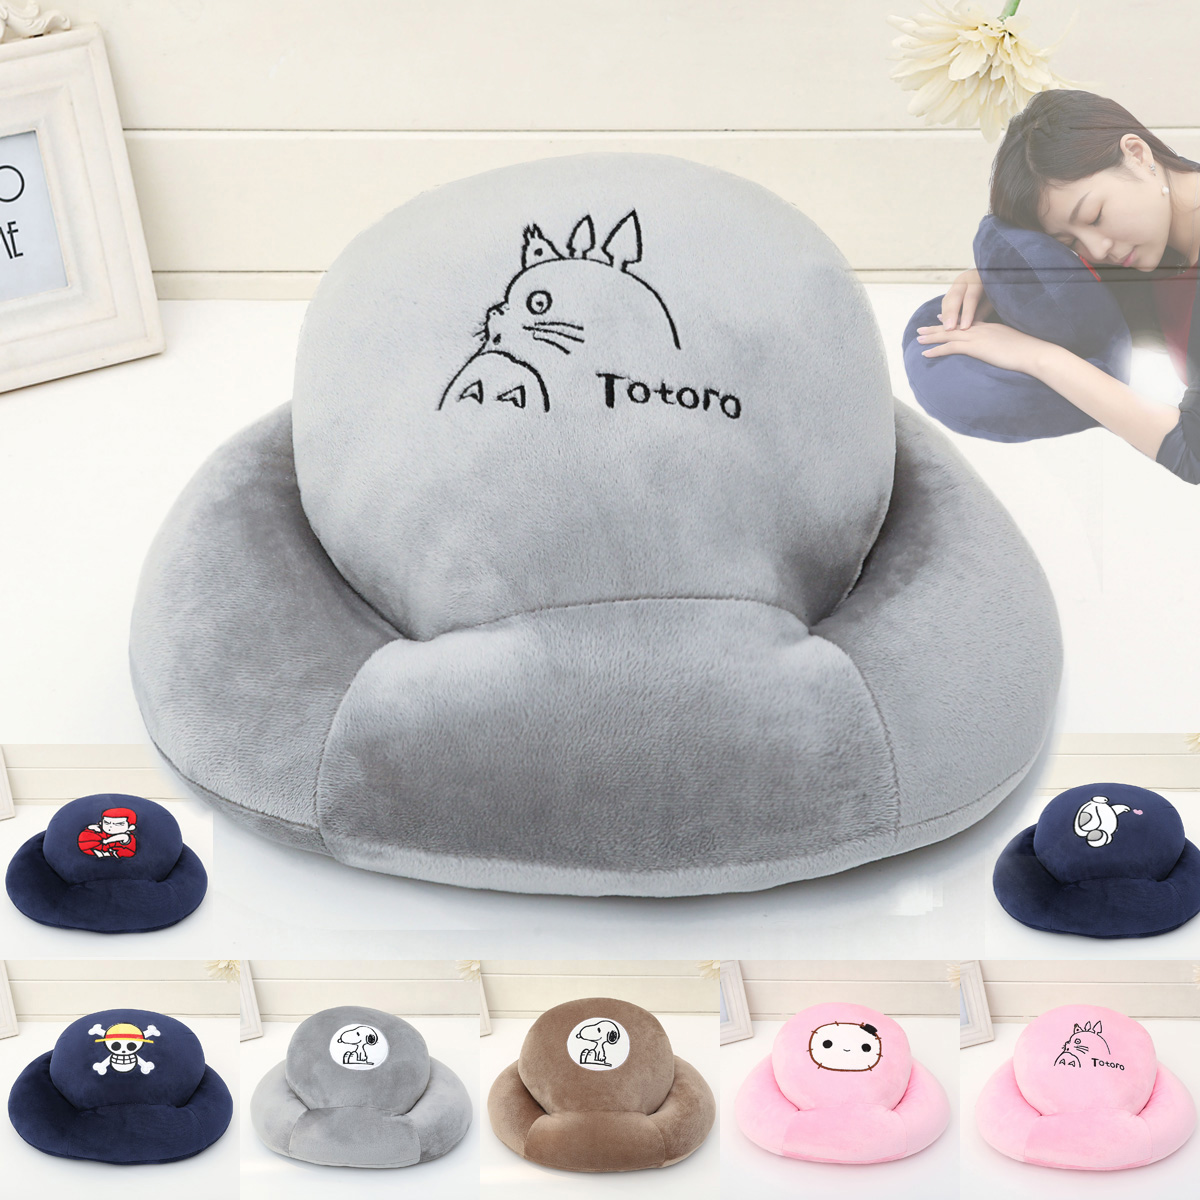 Totoro cartoon super soft pillow pillow nap pillow u students sleep pillow pillow papa office lunch artifact